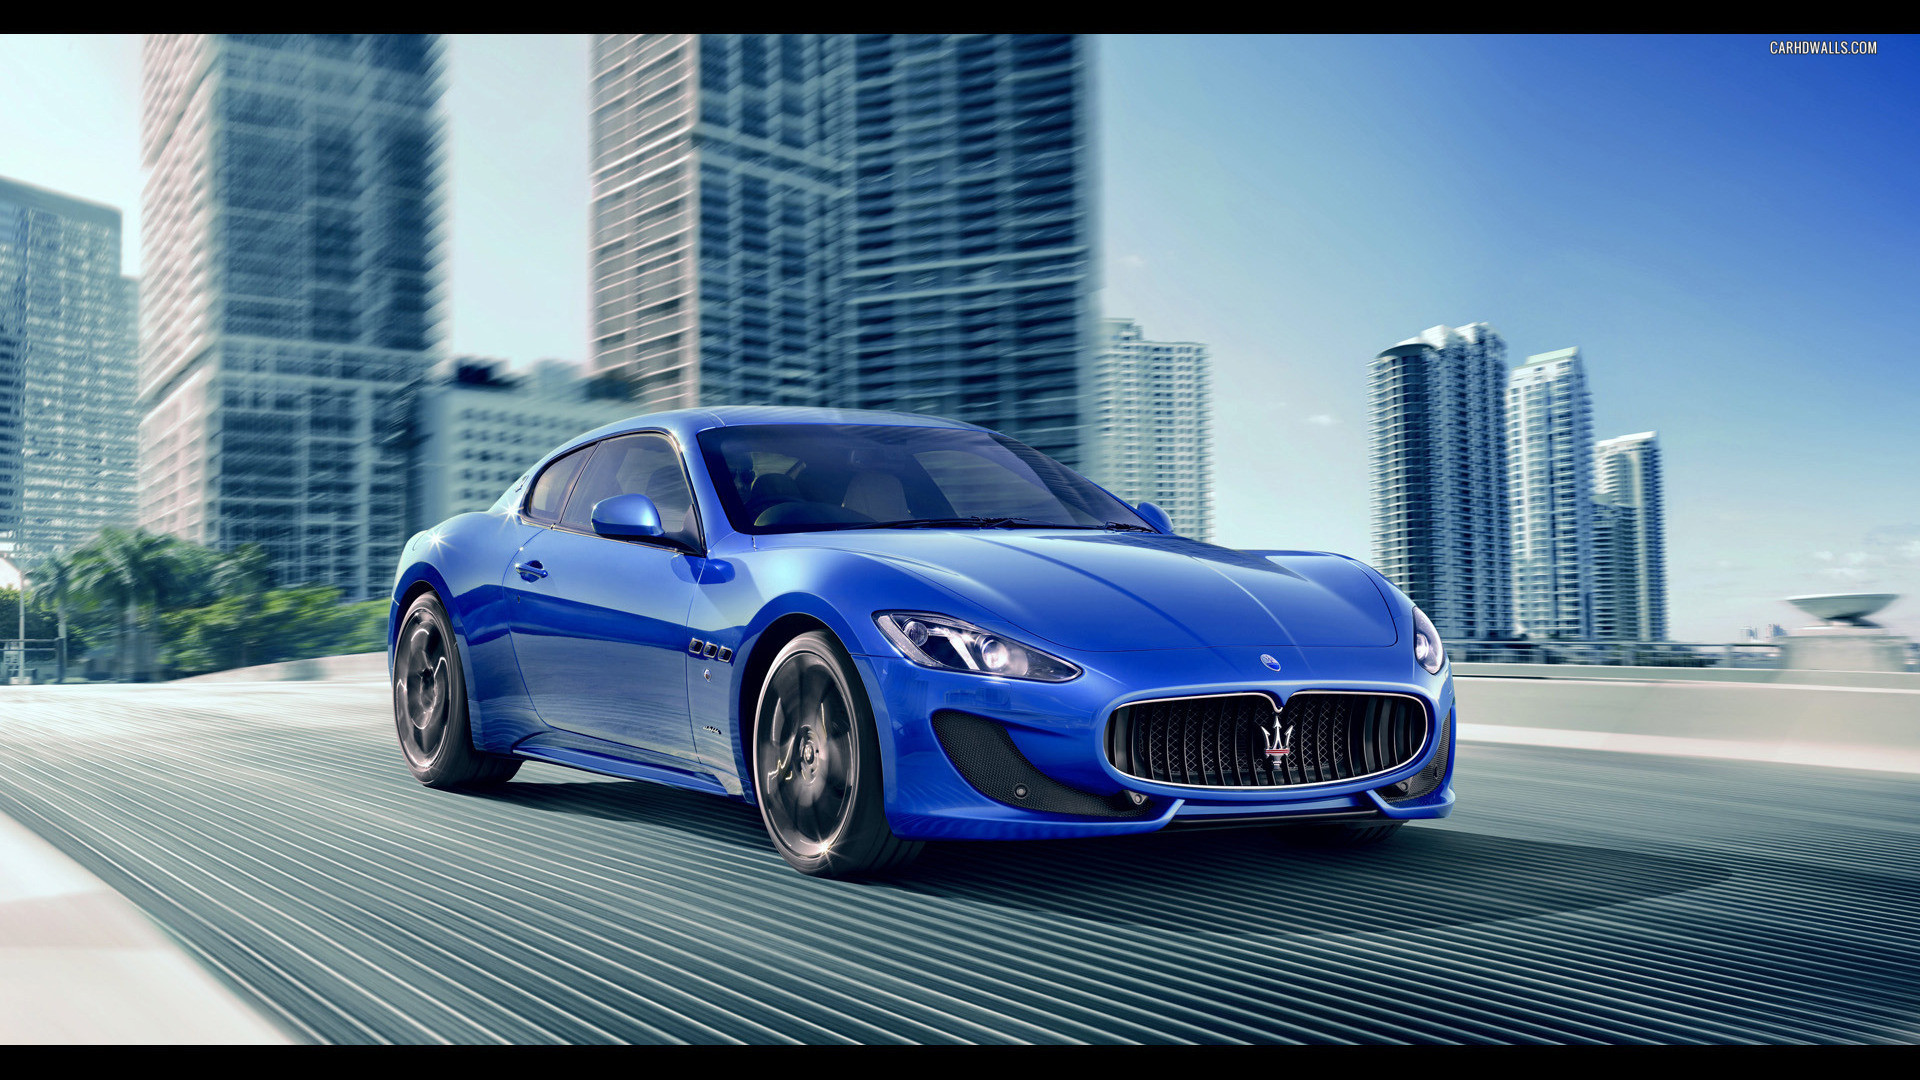 Maserati Car Wallpapers 5 Maserati Blue Car 1920x1080 Download Hd Wallpaper Wallpapertip